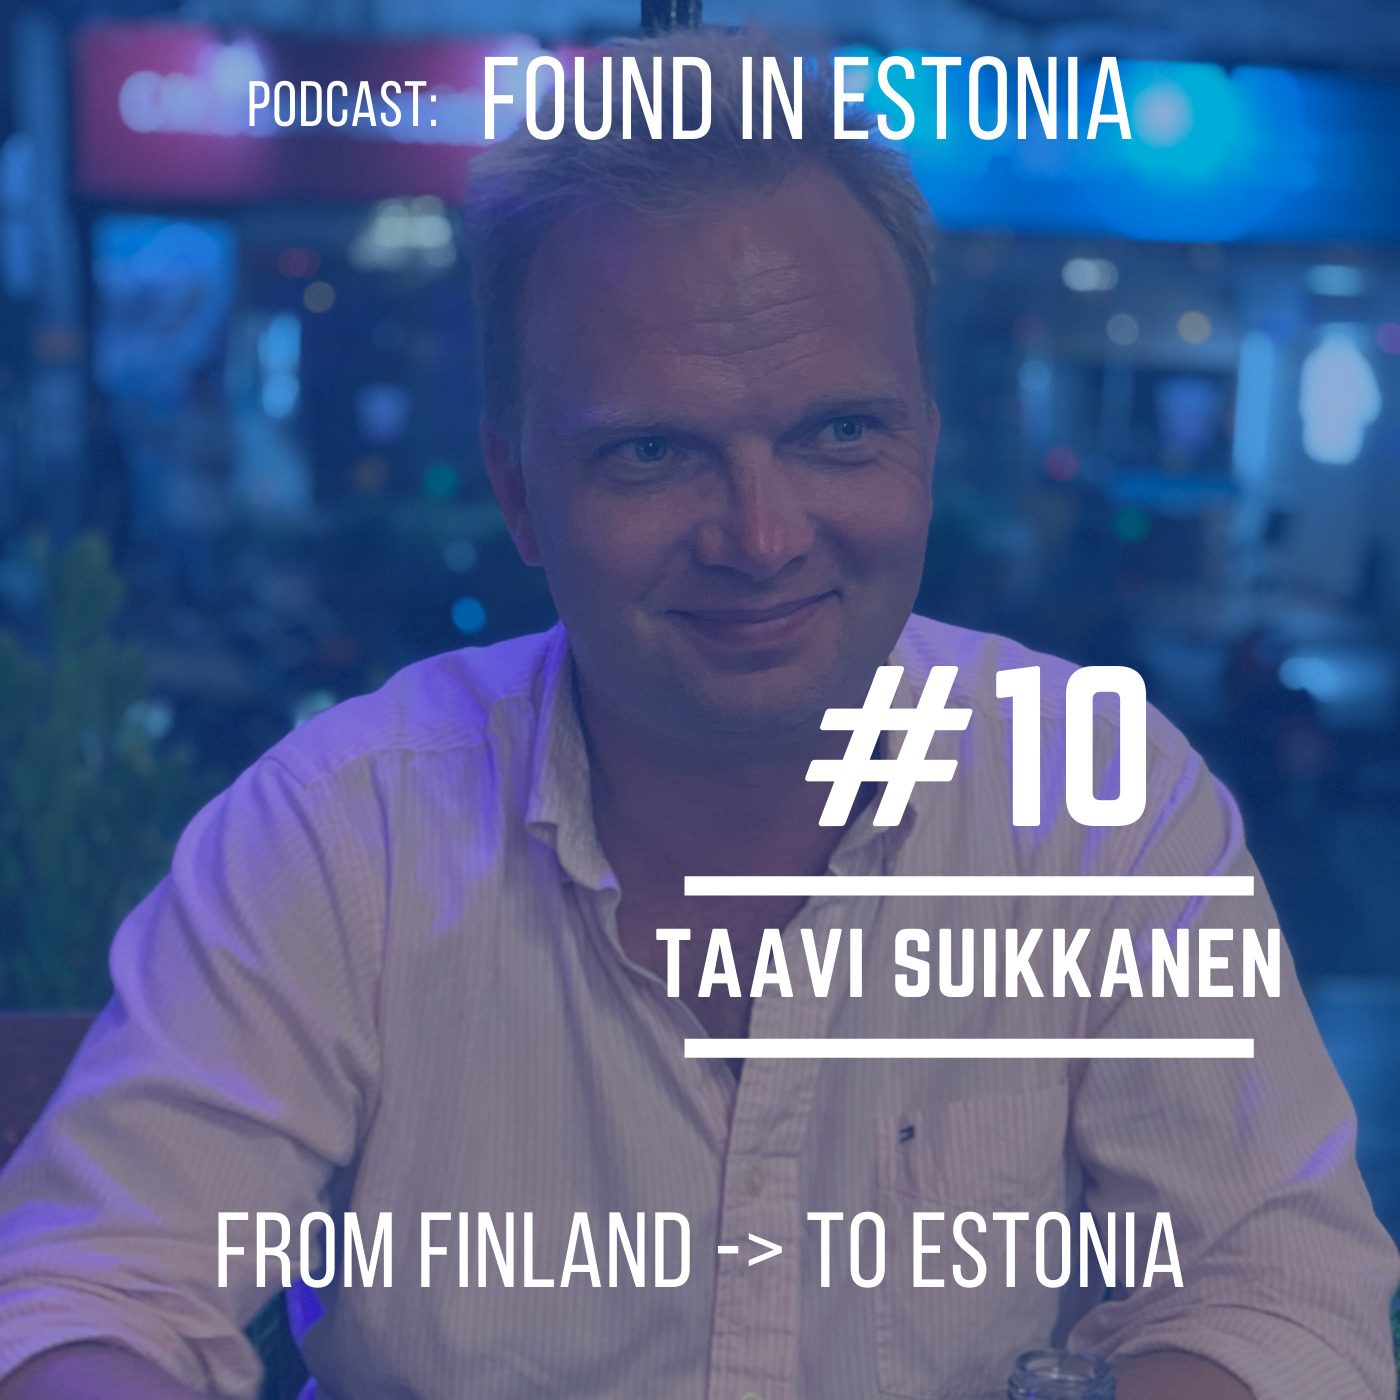 #10 Taavi Suikkanen - from Finland to Estonia